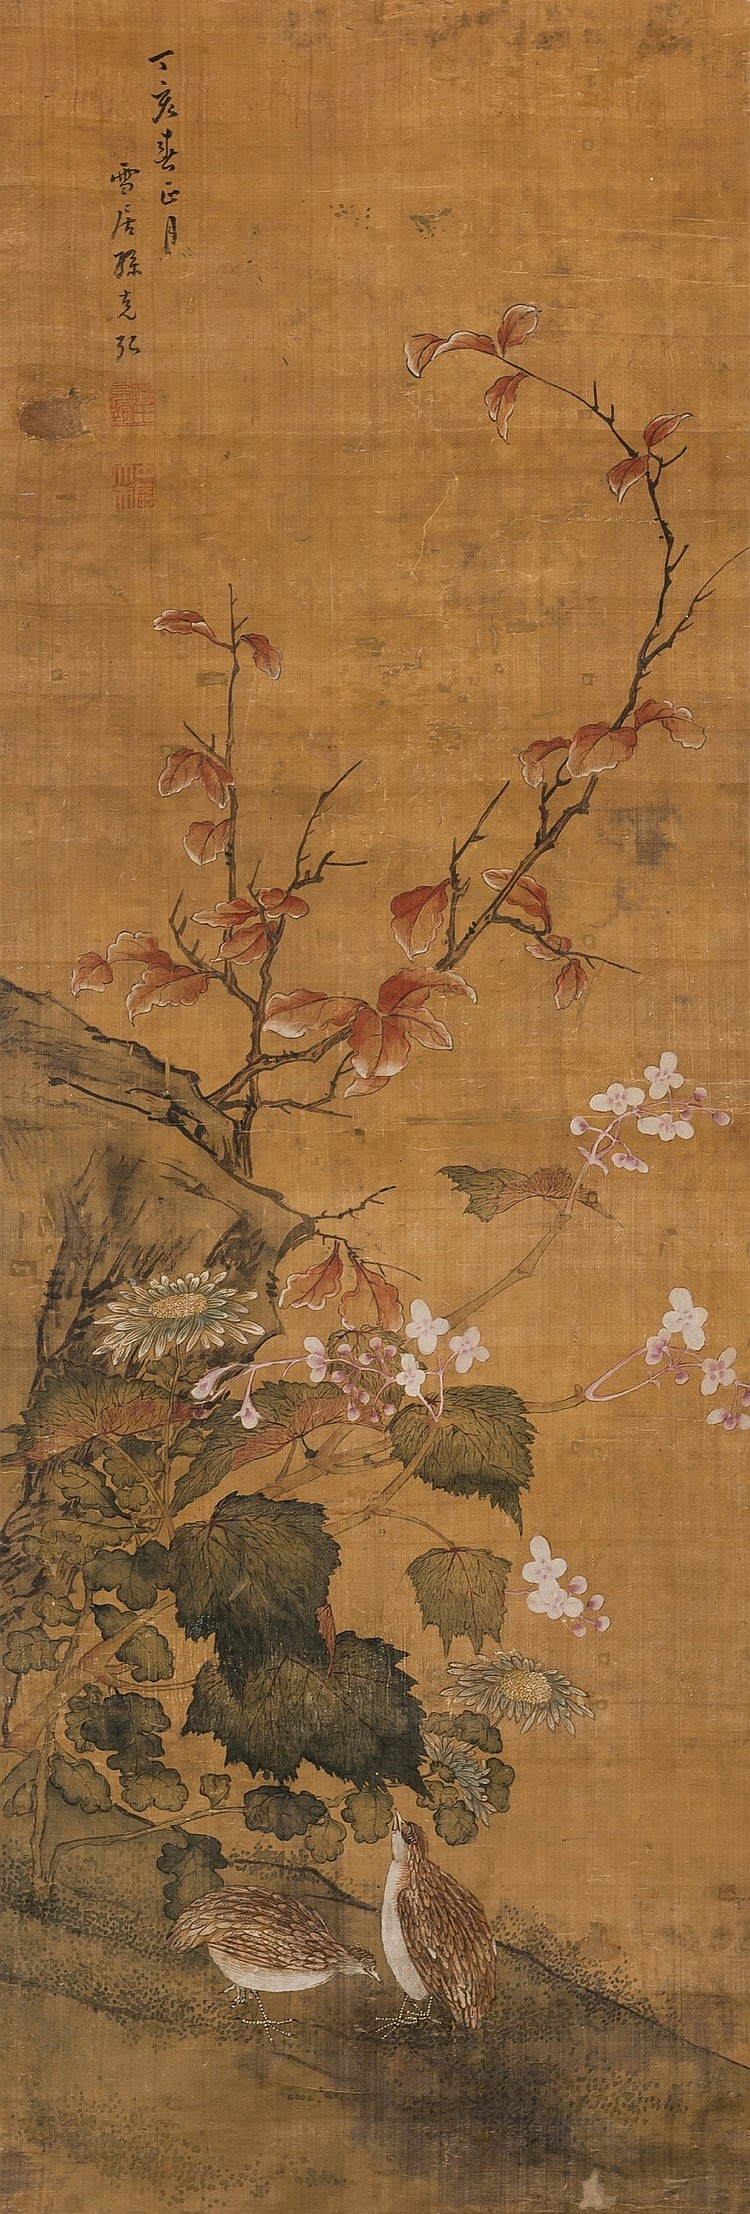 Sun KeHong (1522-1611) Birds And Flowers